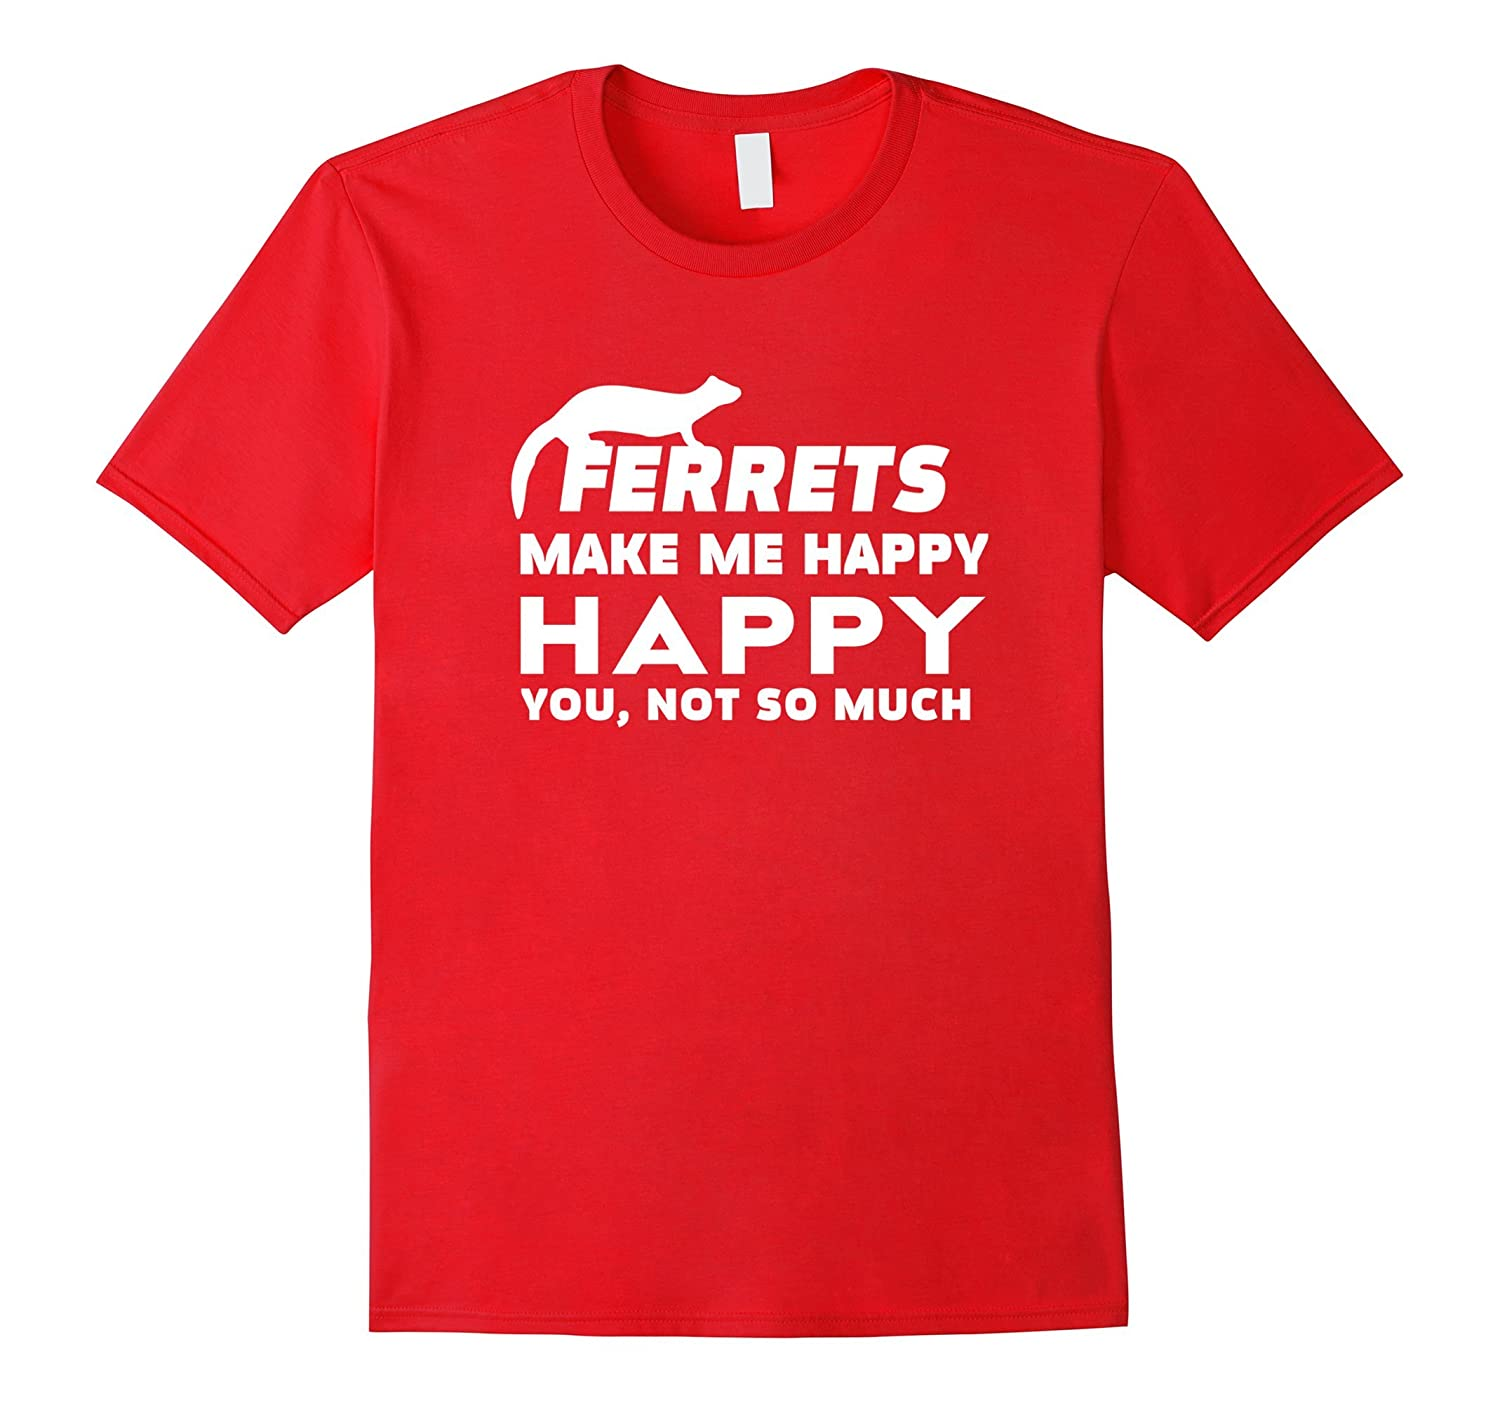 Ferrets T-shirt - Ferrets make me happy you not so much-PL